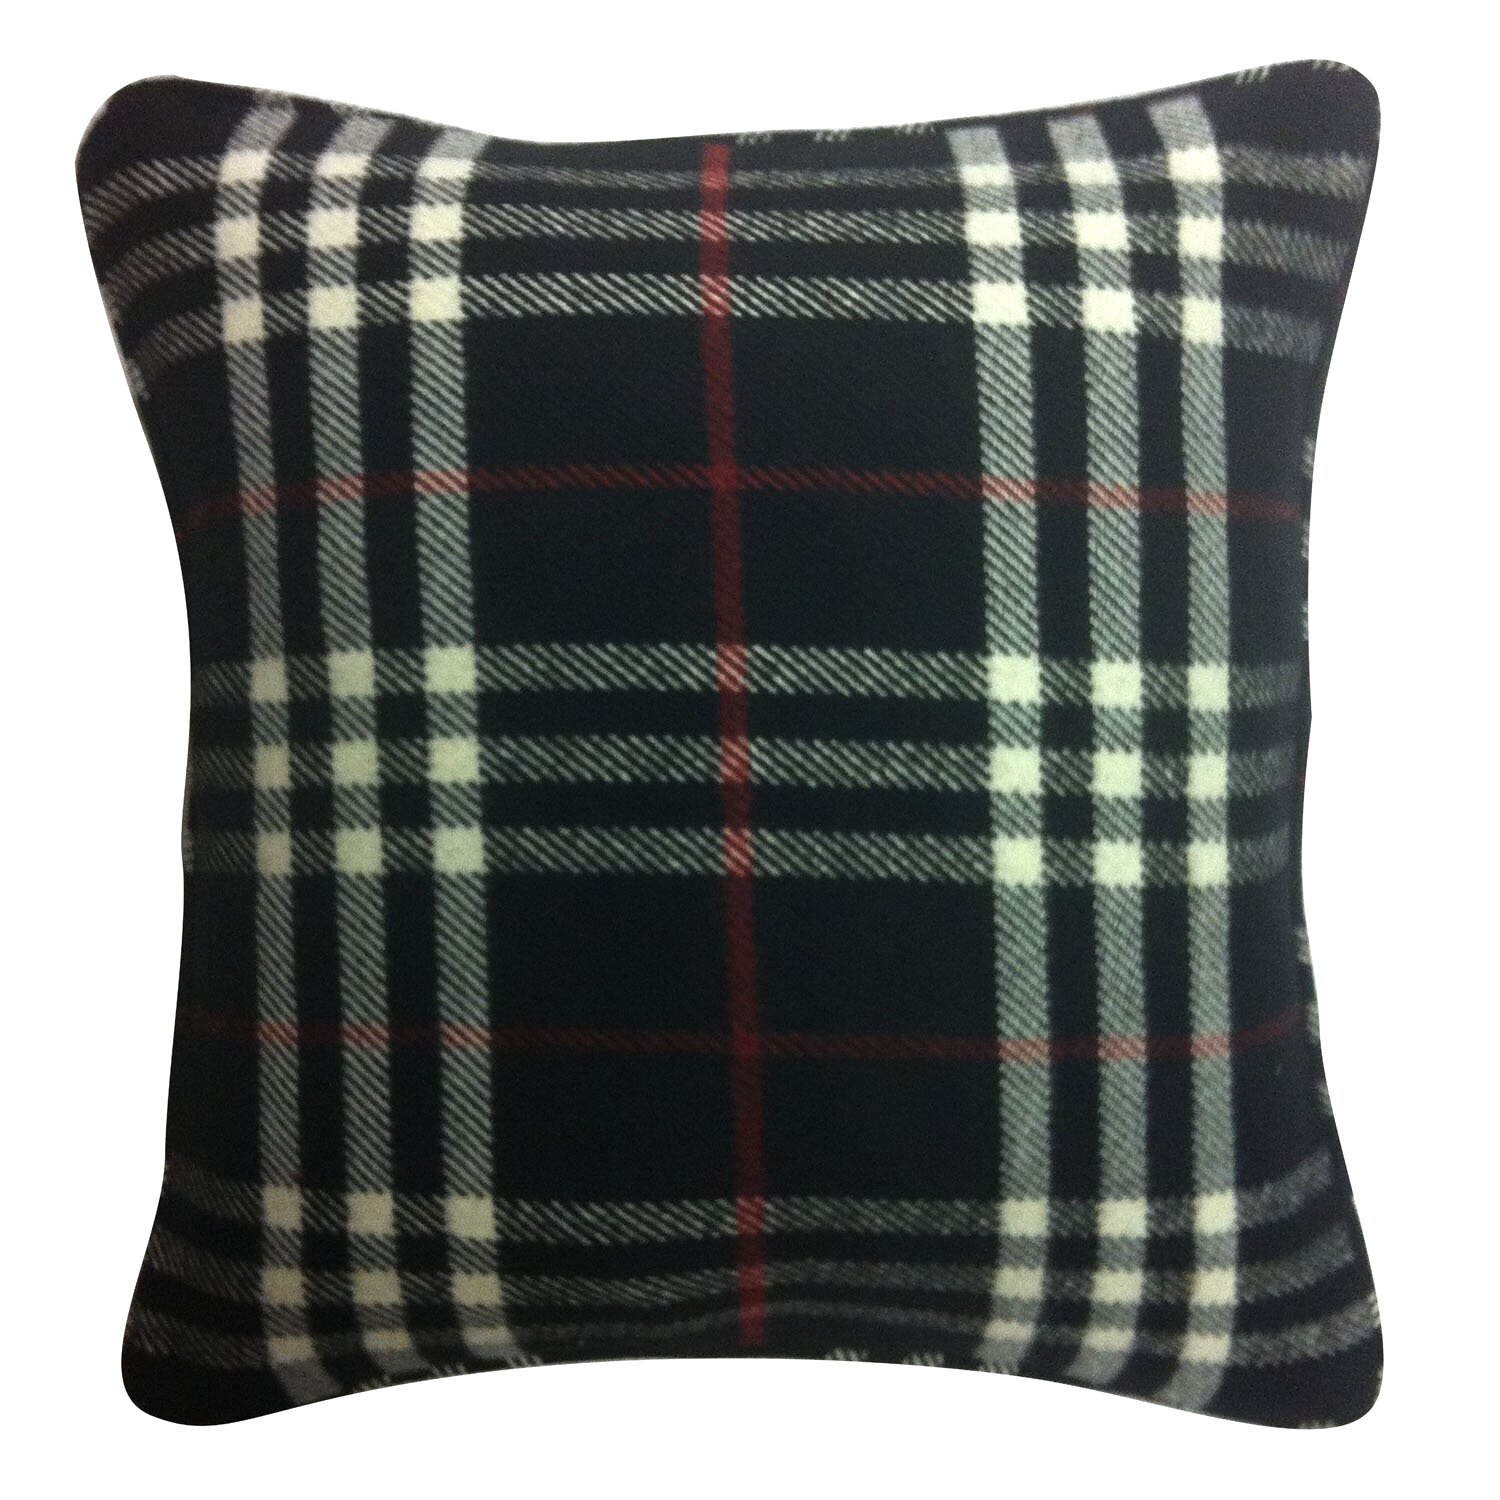 Black Plaid Throw Pillows : Filos Design Black Plaid Throw Pillow Wayfair